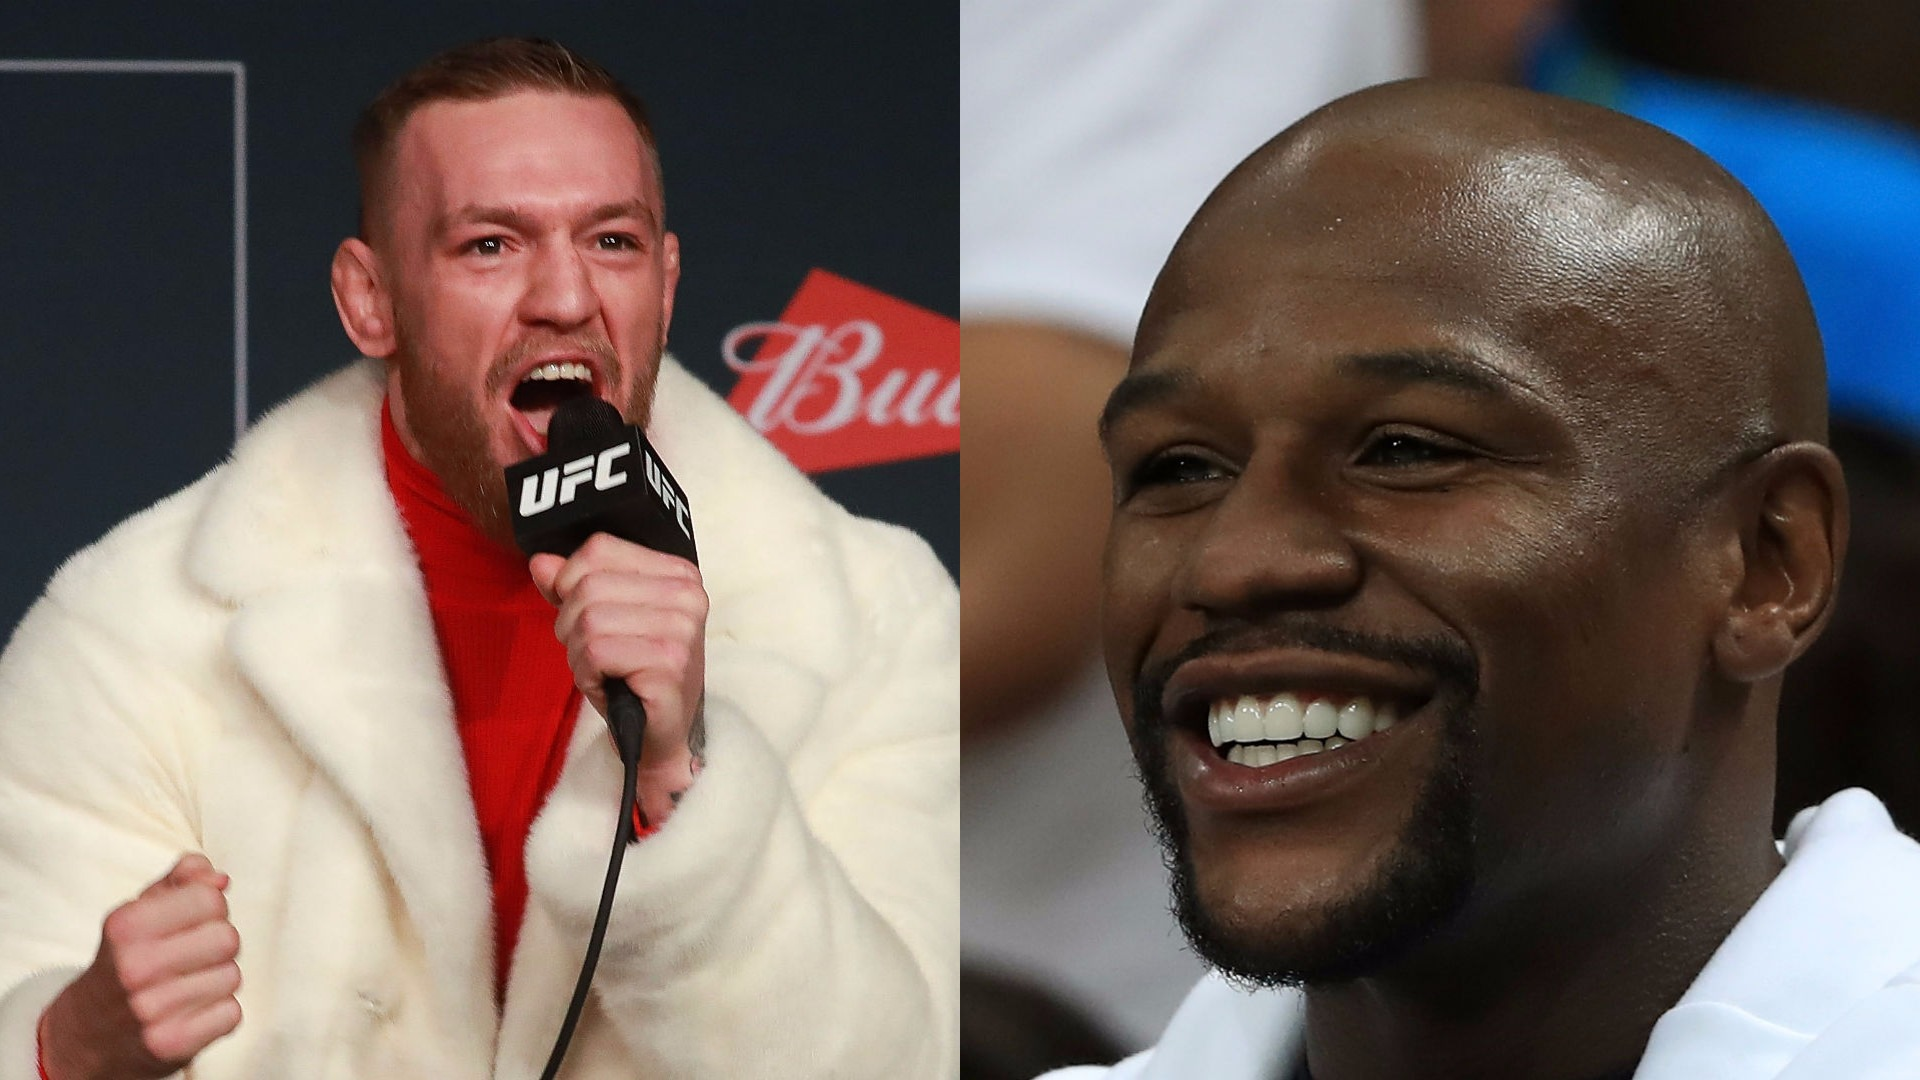 Dana White Responds After Floyd Mayweather Laughs Off $25 Million Offer